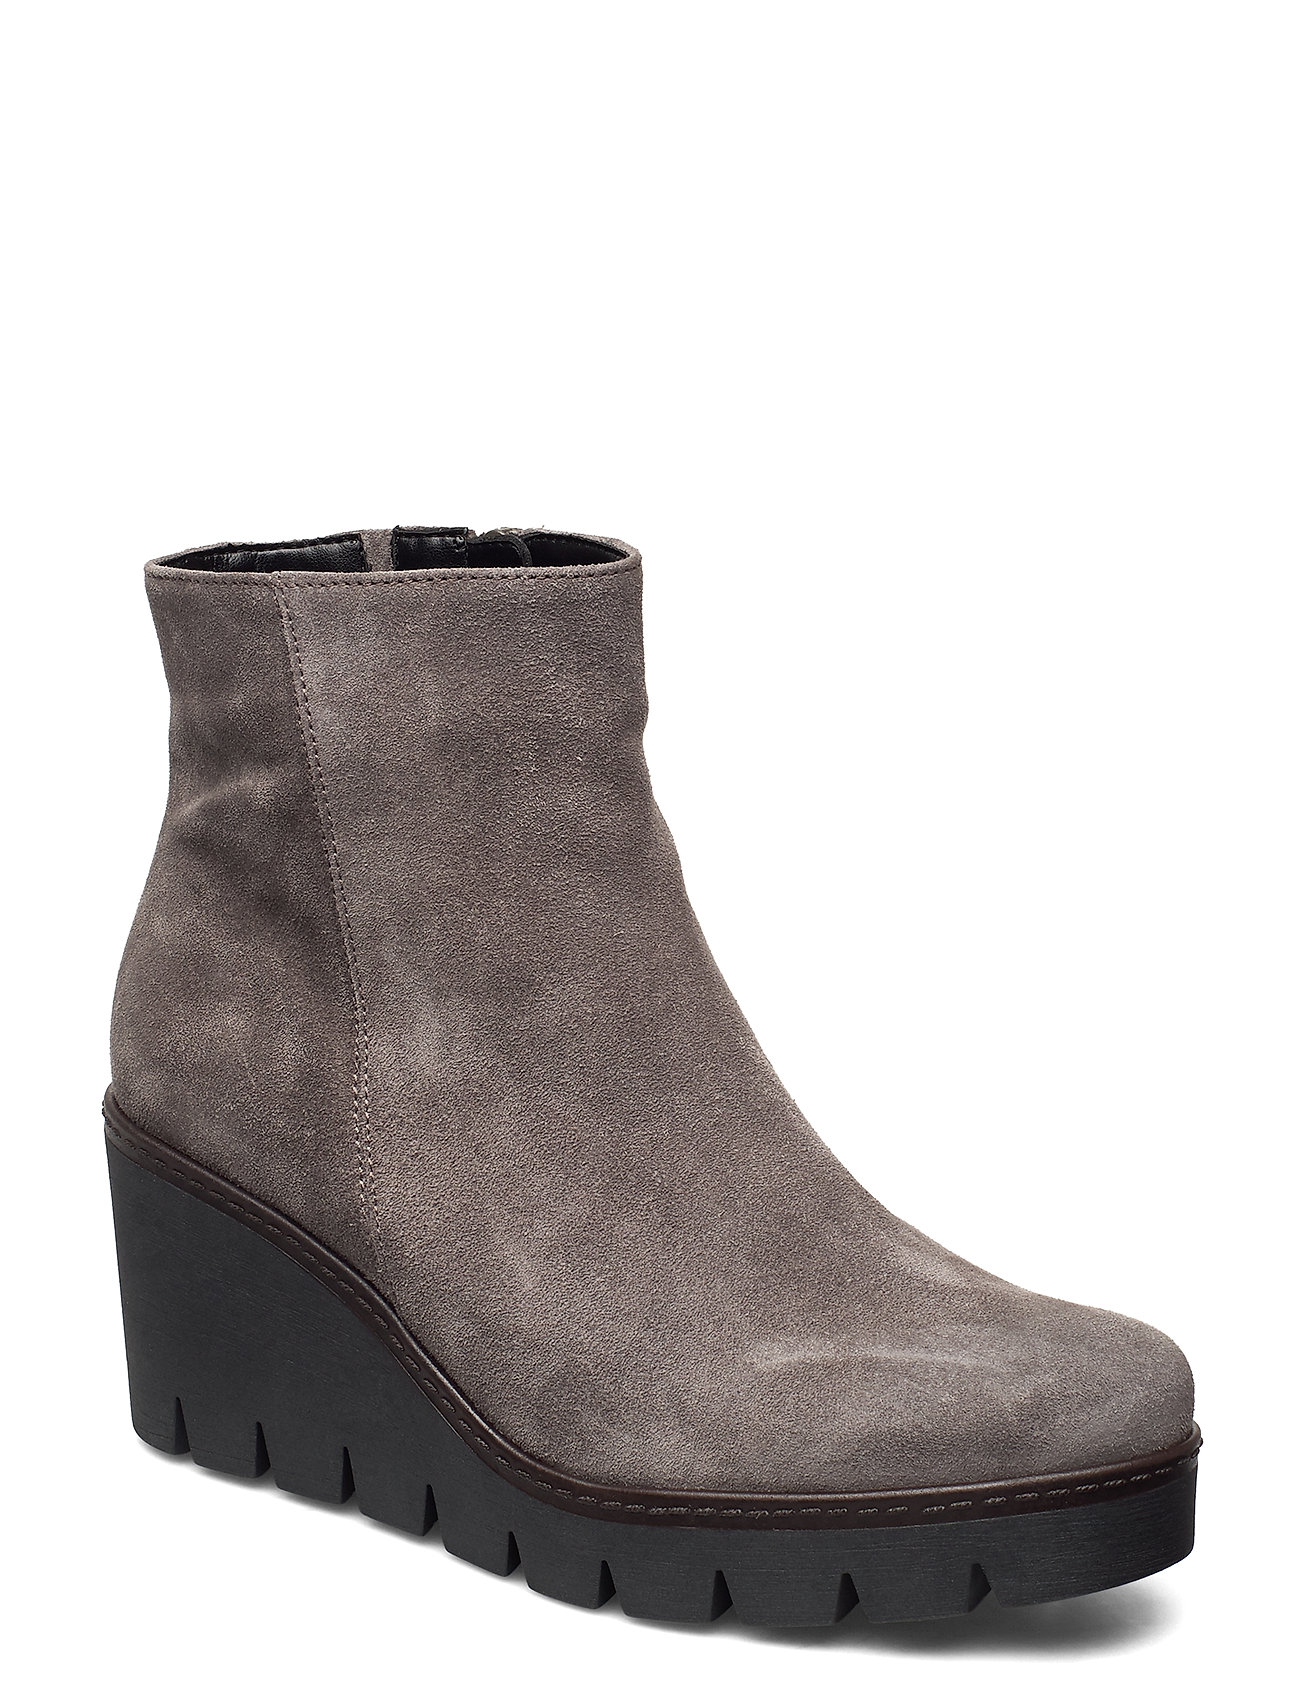 Image of Ankle Boot Shoes Boots Ankle Boots Ankle Boot - Heel Grå Gabor (3445903707)